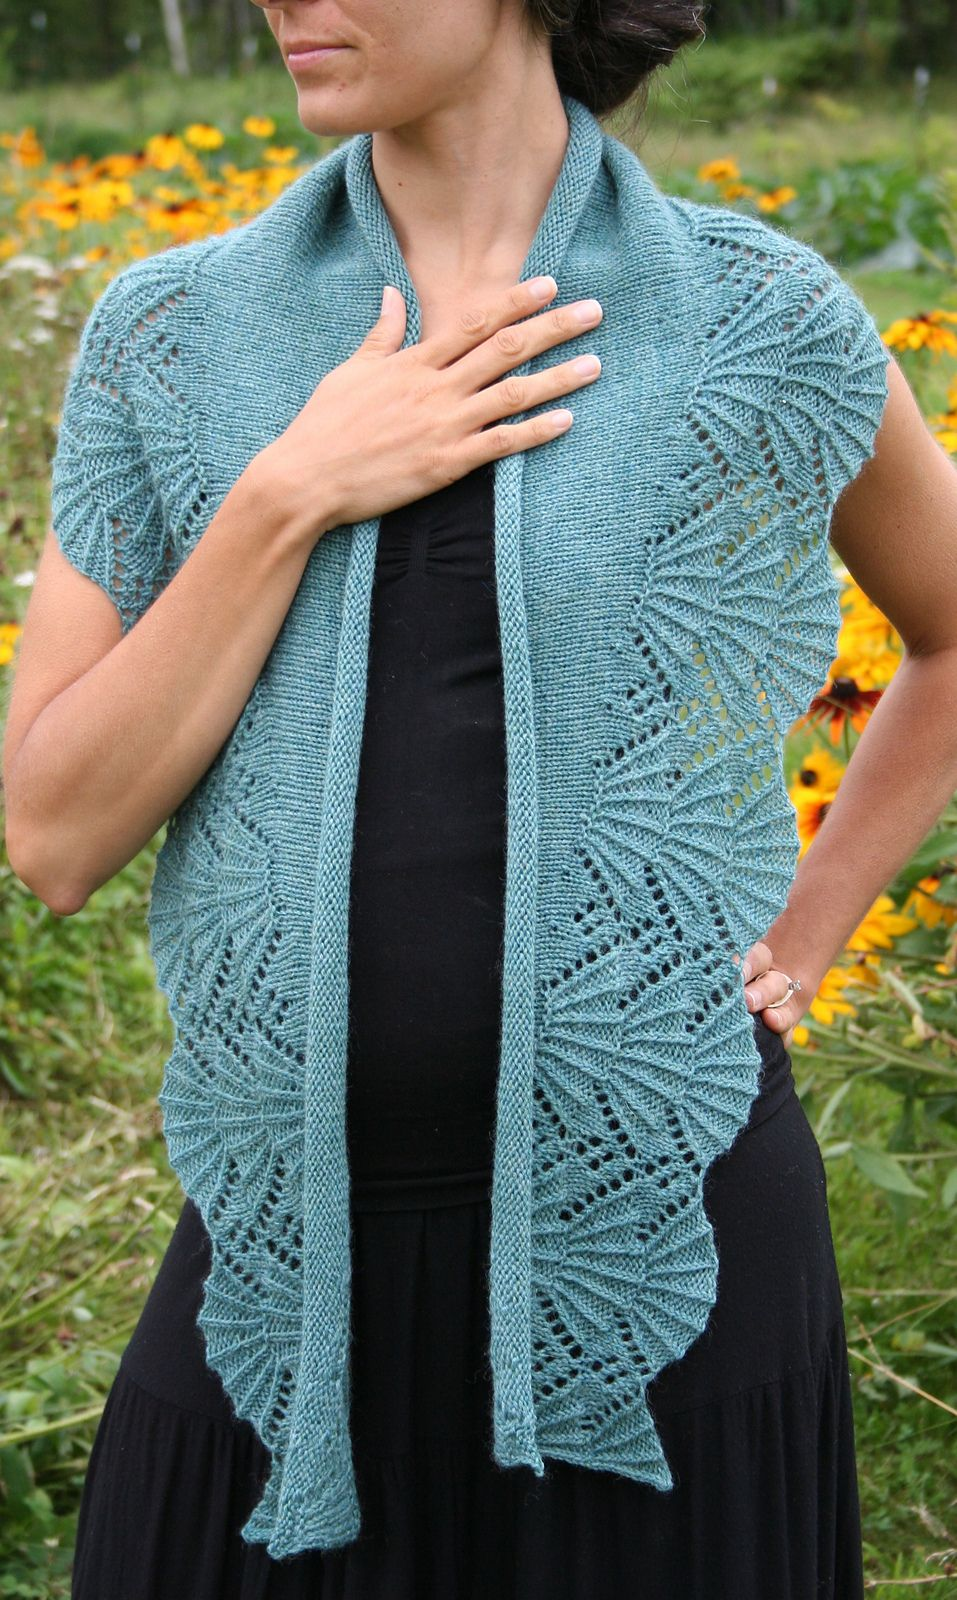 Bliss shawl pattern by amanda lilley shawl patterns ravelry and bliss shawl pattern by amanda lilley bankloansurffo Image collections